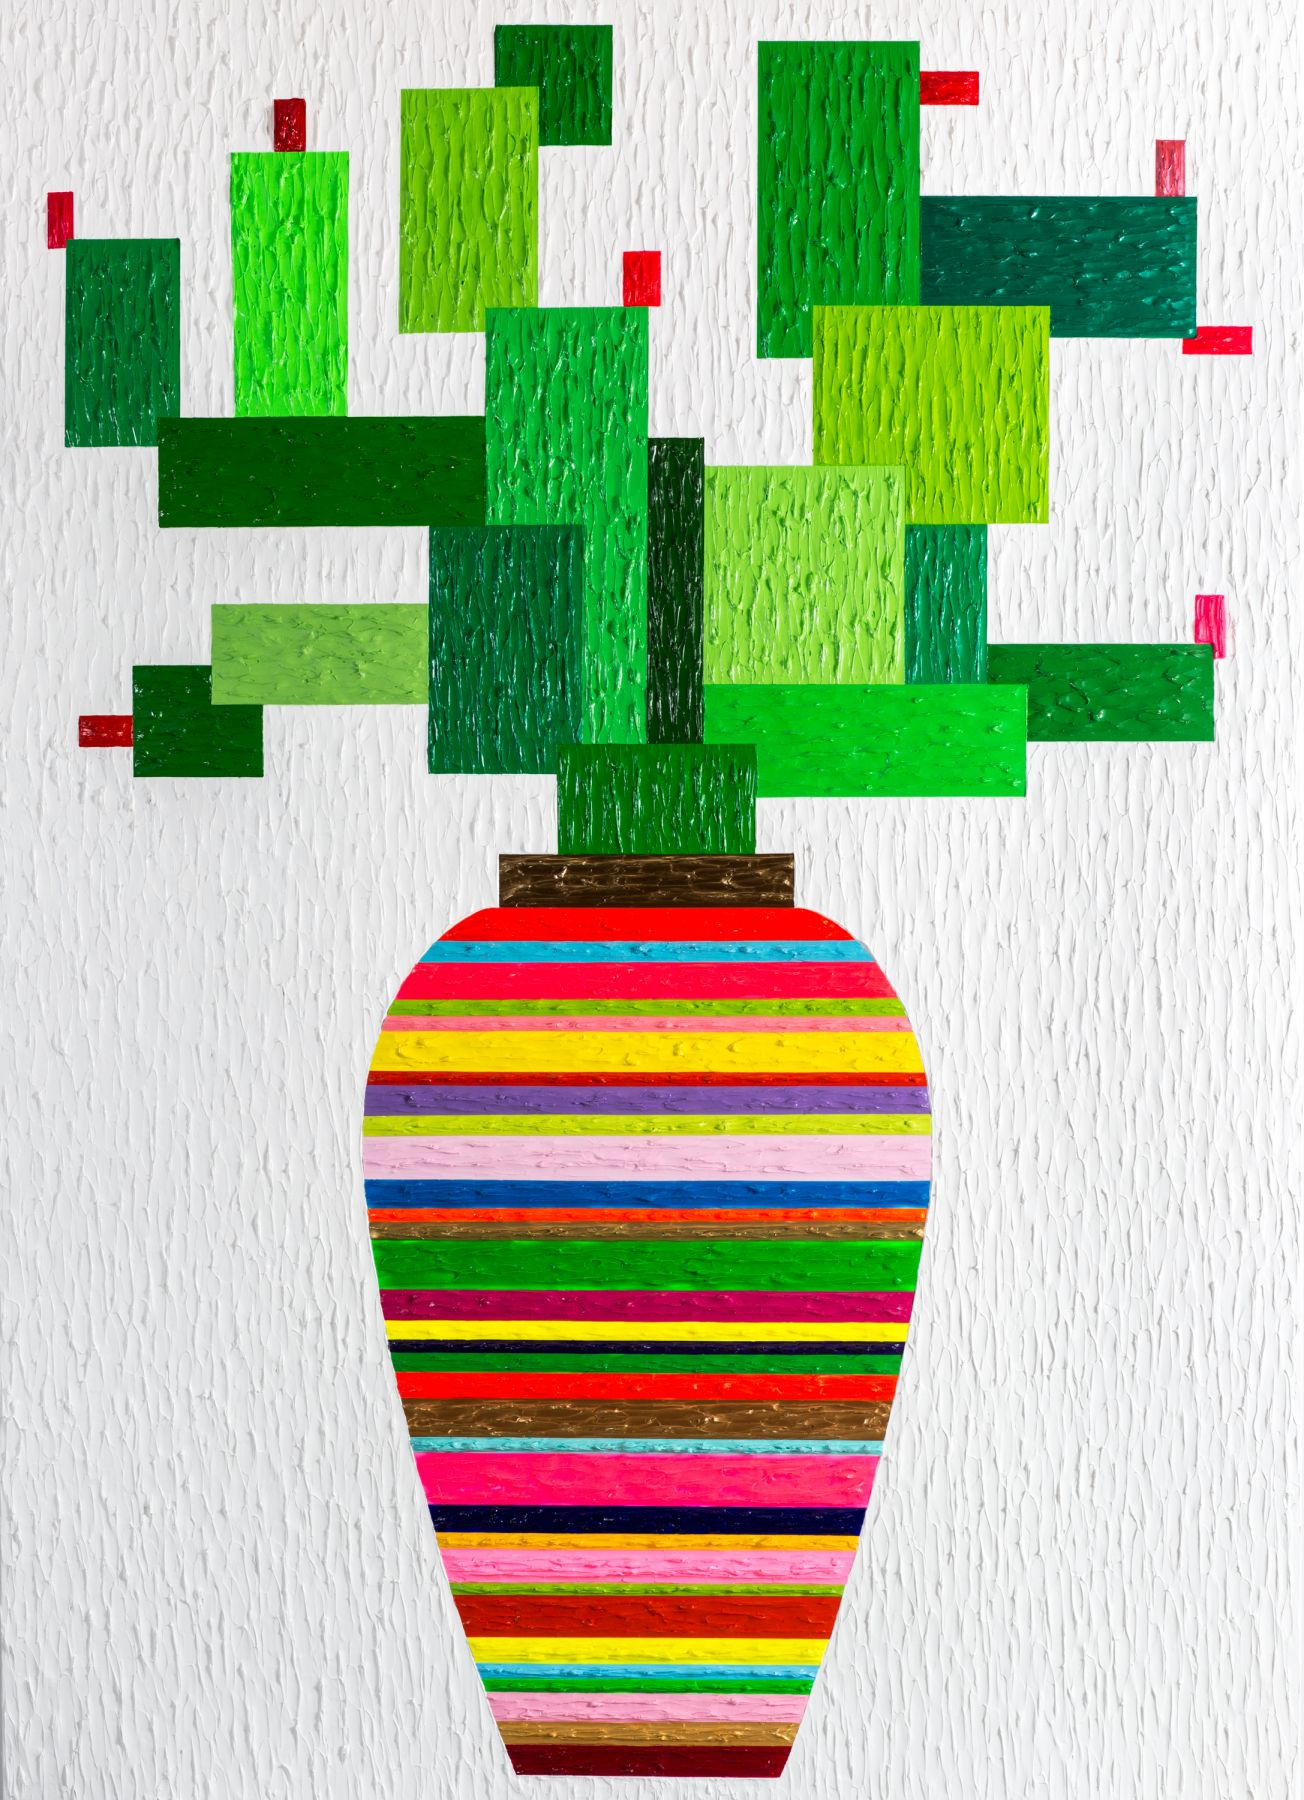 Cactus by Zhenya Xia at Hg Contemporary, founded by Philippe Hoerle-Guggenheim